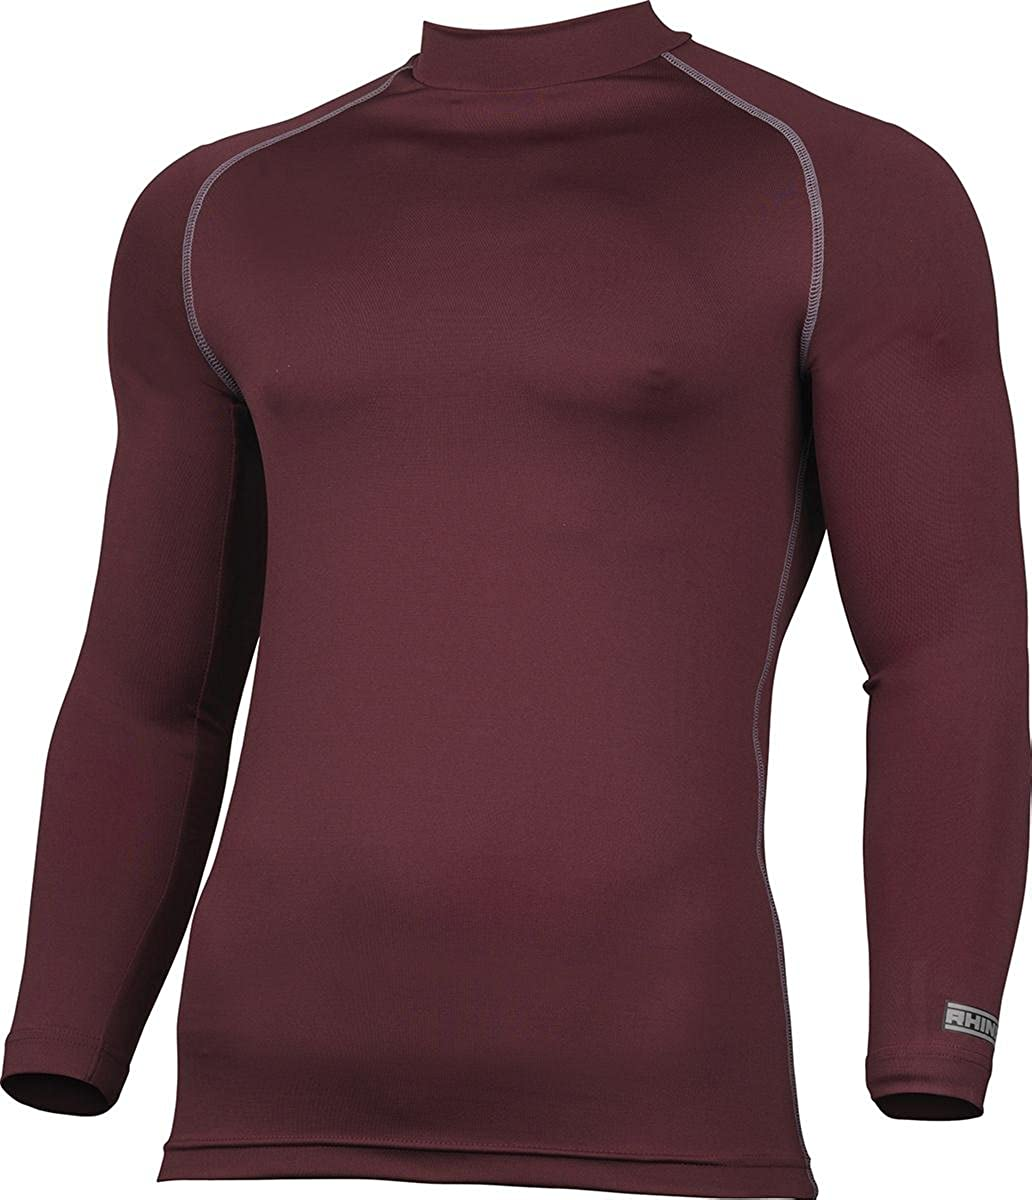 Rhino Adults Activewear Compression Top Long Sleeve Turtleneck Base Layer Shirt